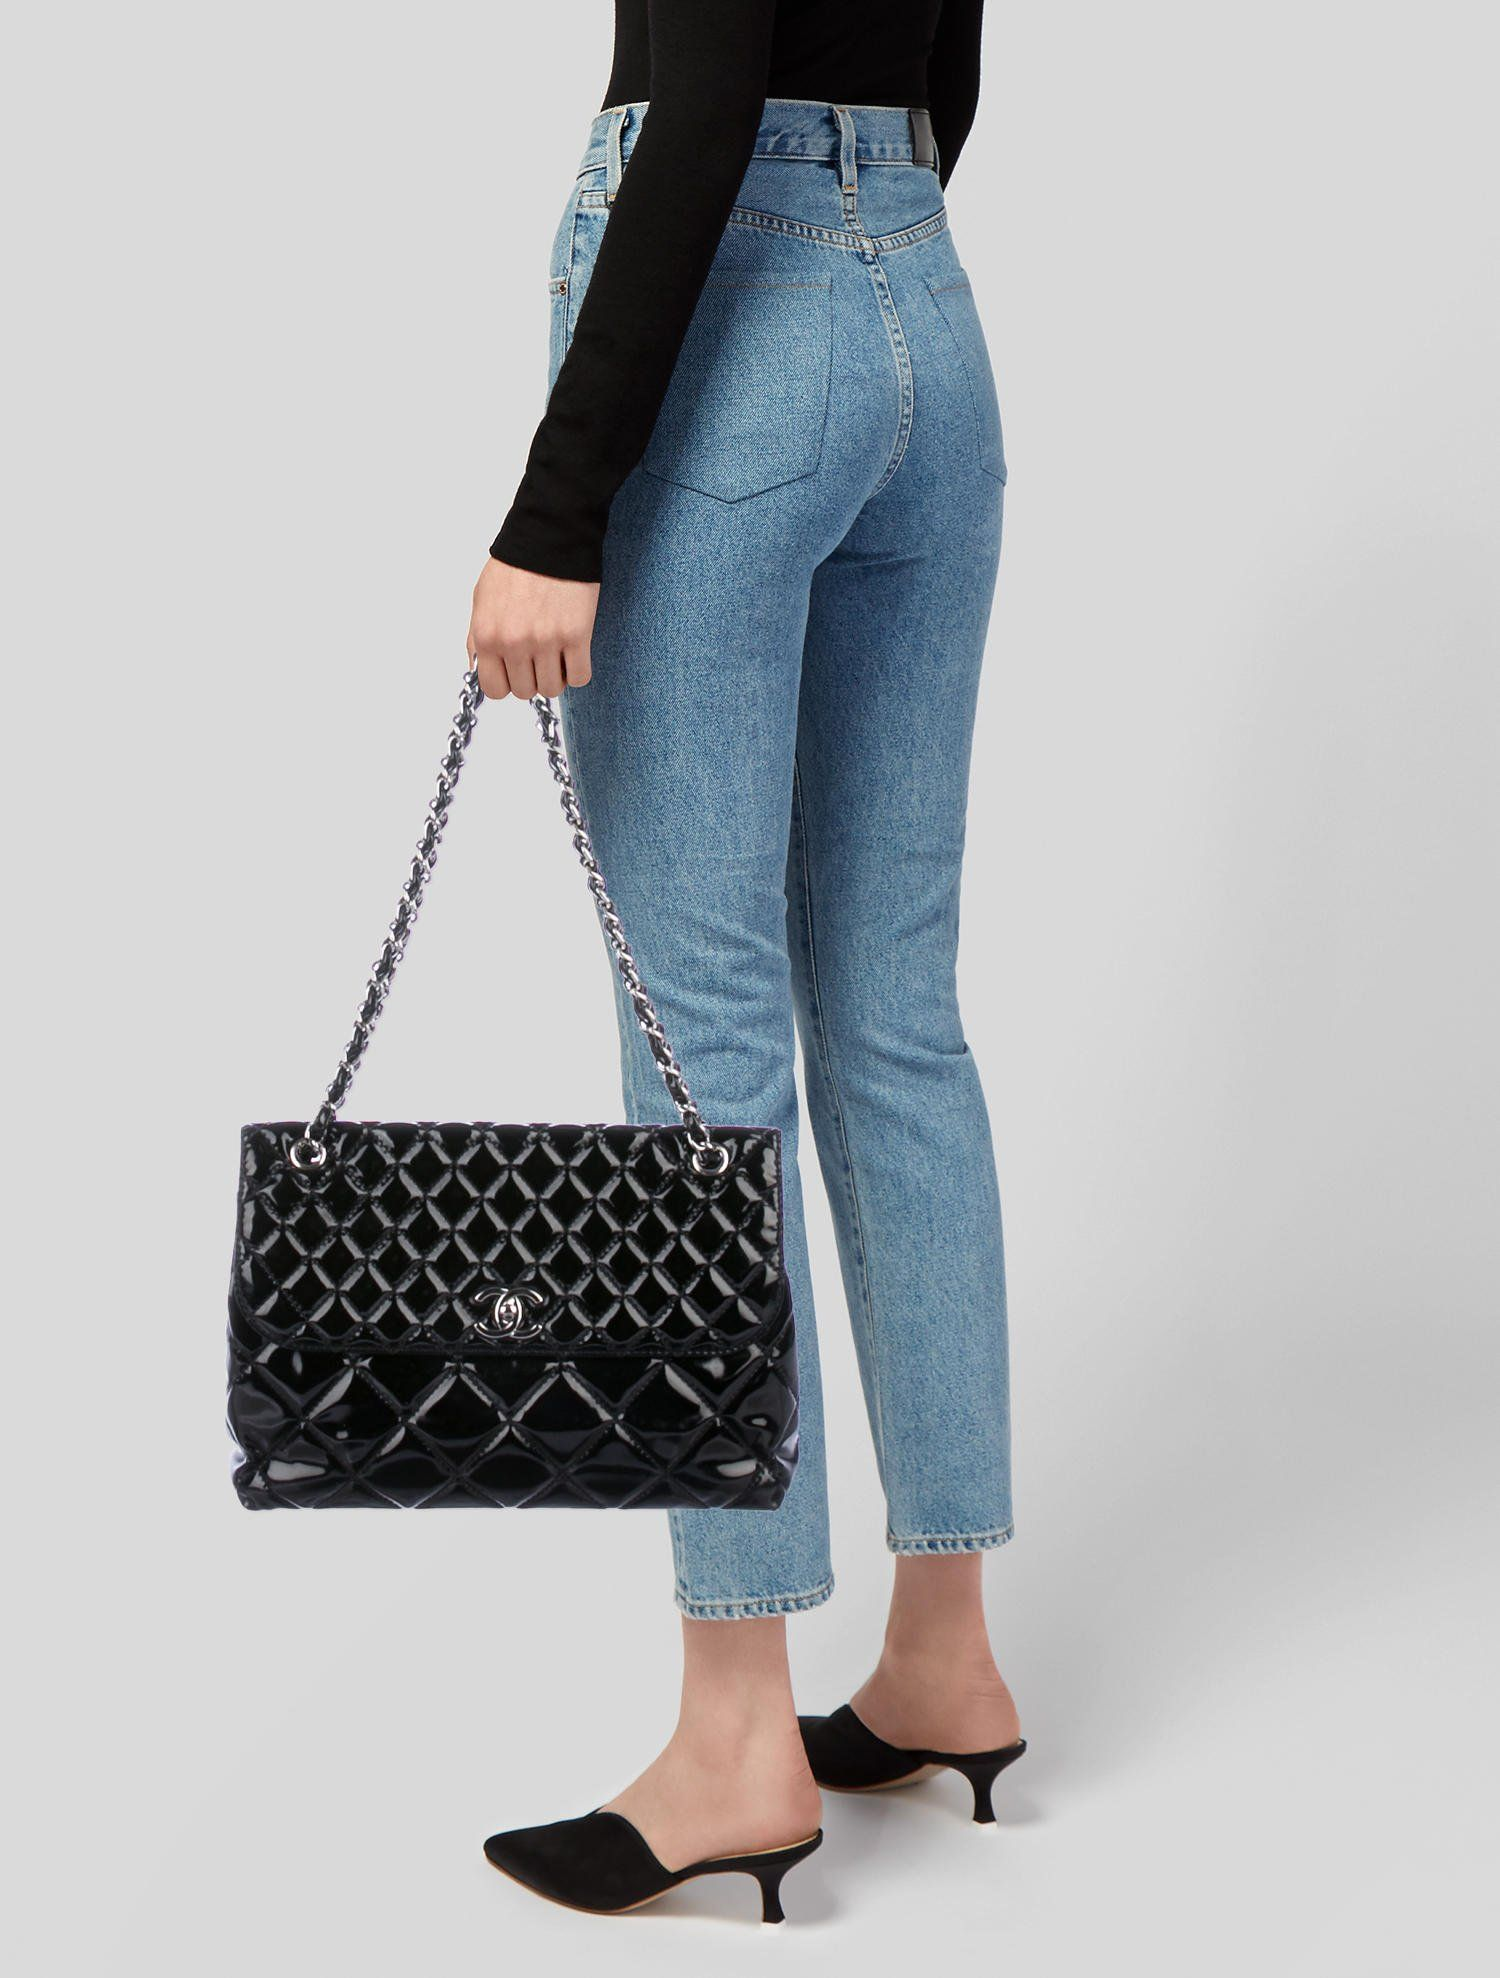 b06e4ef19d3 In the Business Flap Bag in 2019 | BAGS | Bags, Shoulder bag, Chanel ...